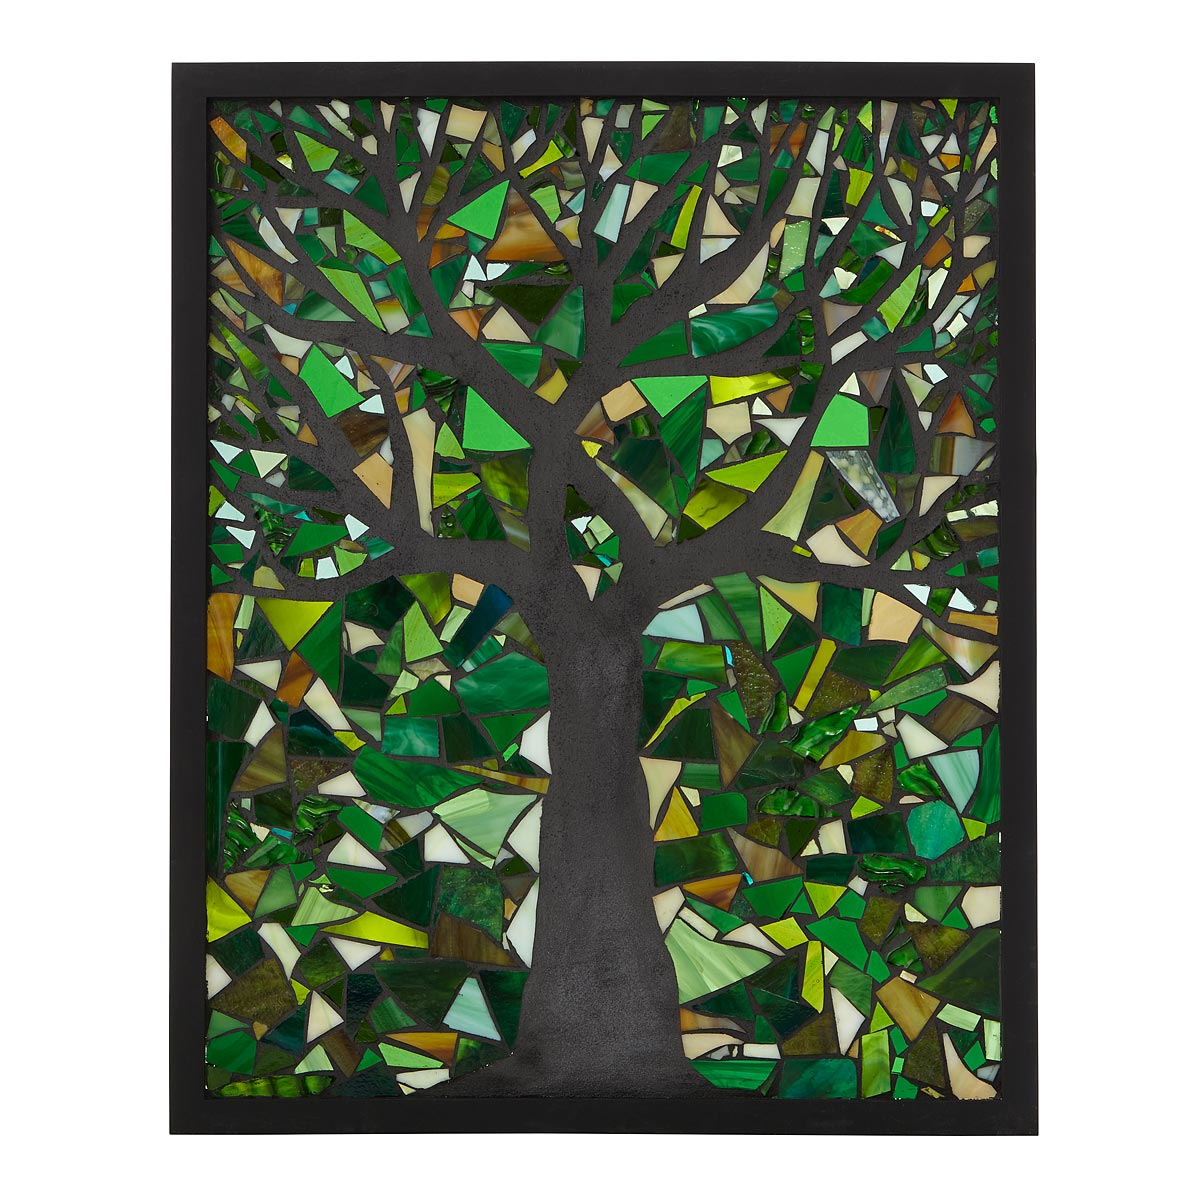 Spring Tree Stained Glass Panel by Chanda Frohle | UncommonGoods